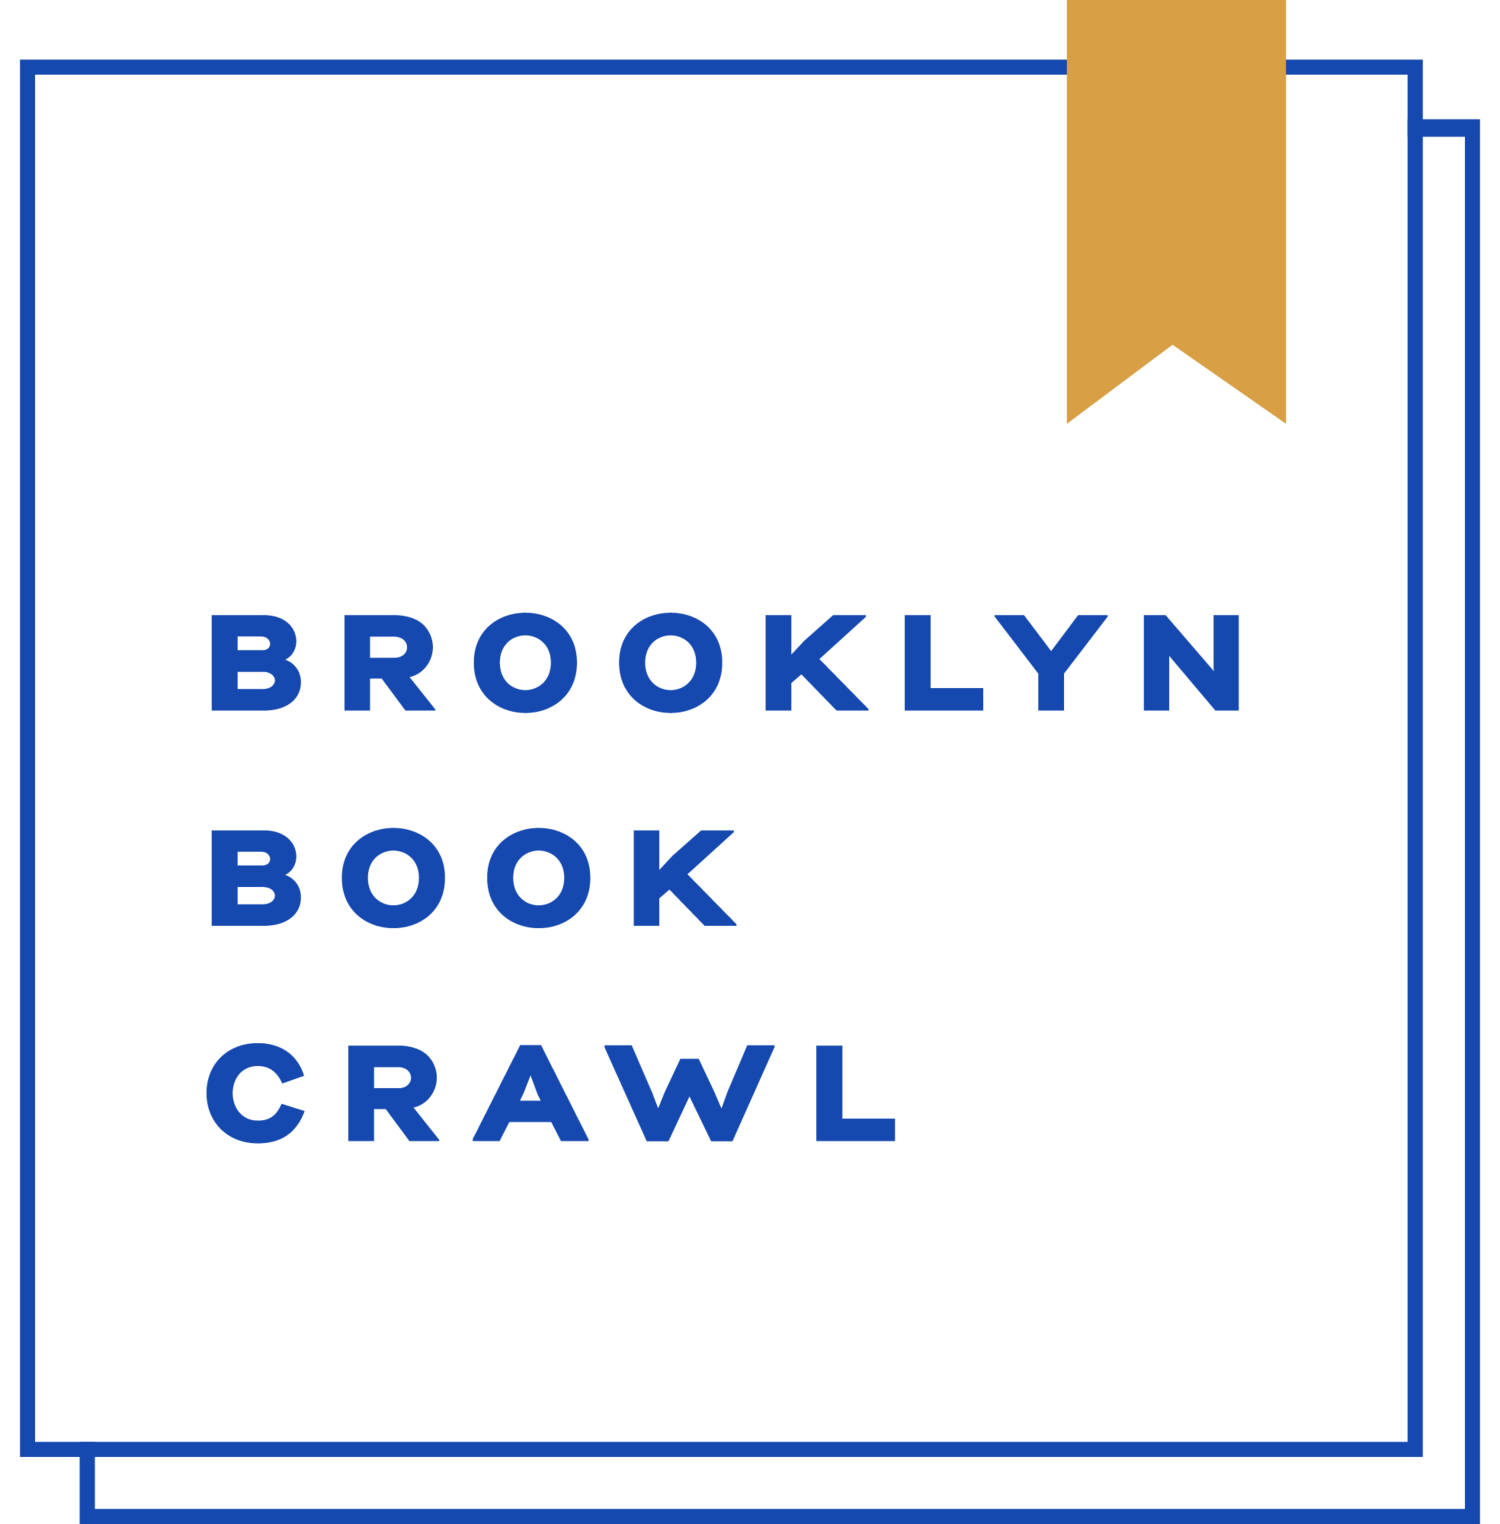 Brooklyn Bookstore Crawl